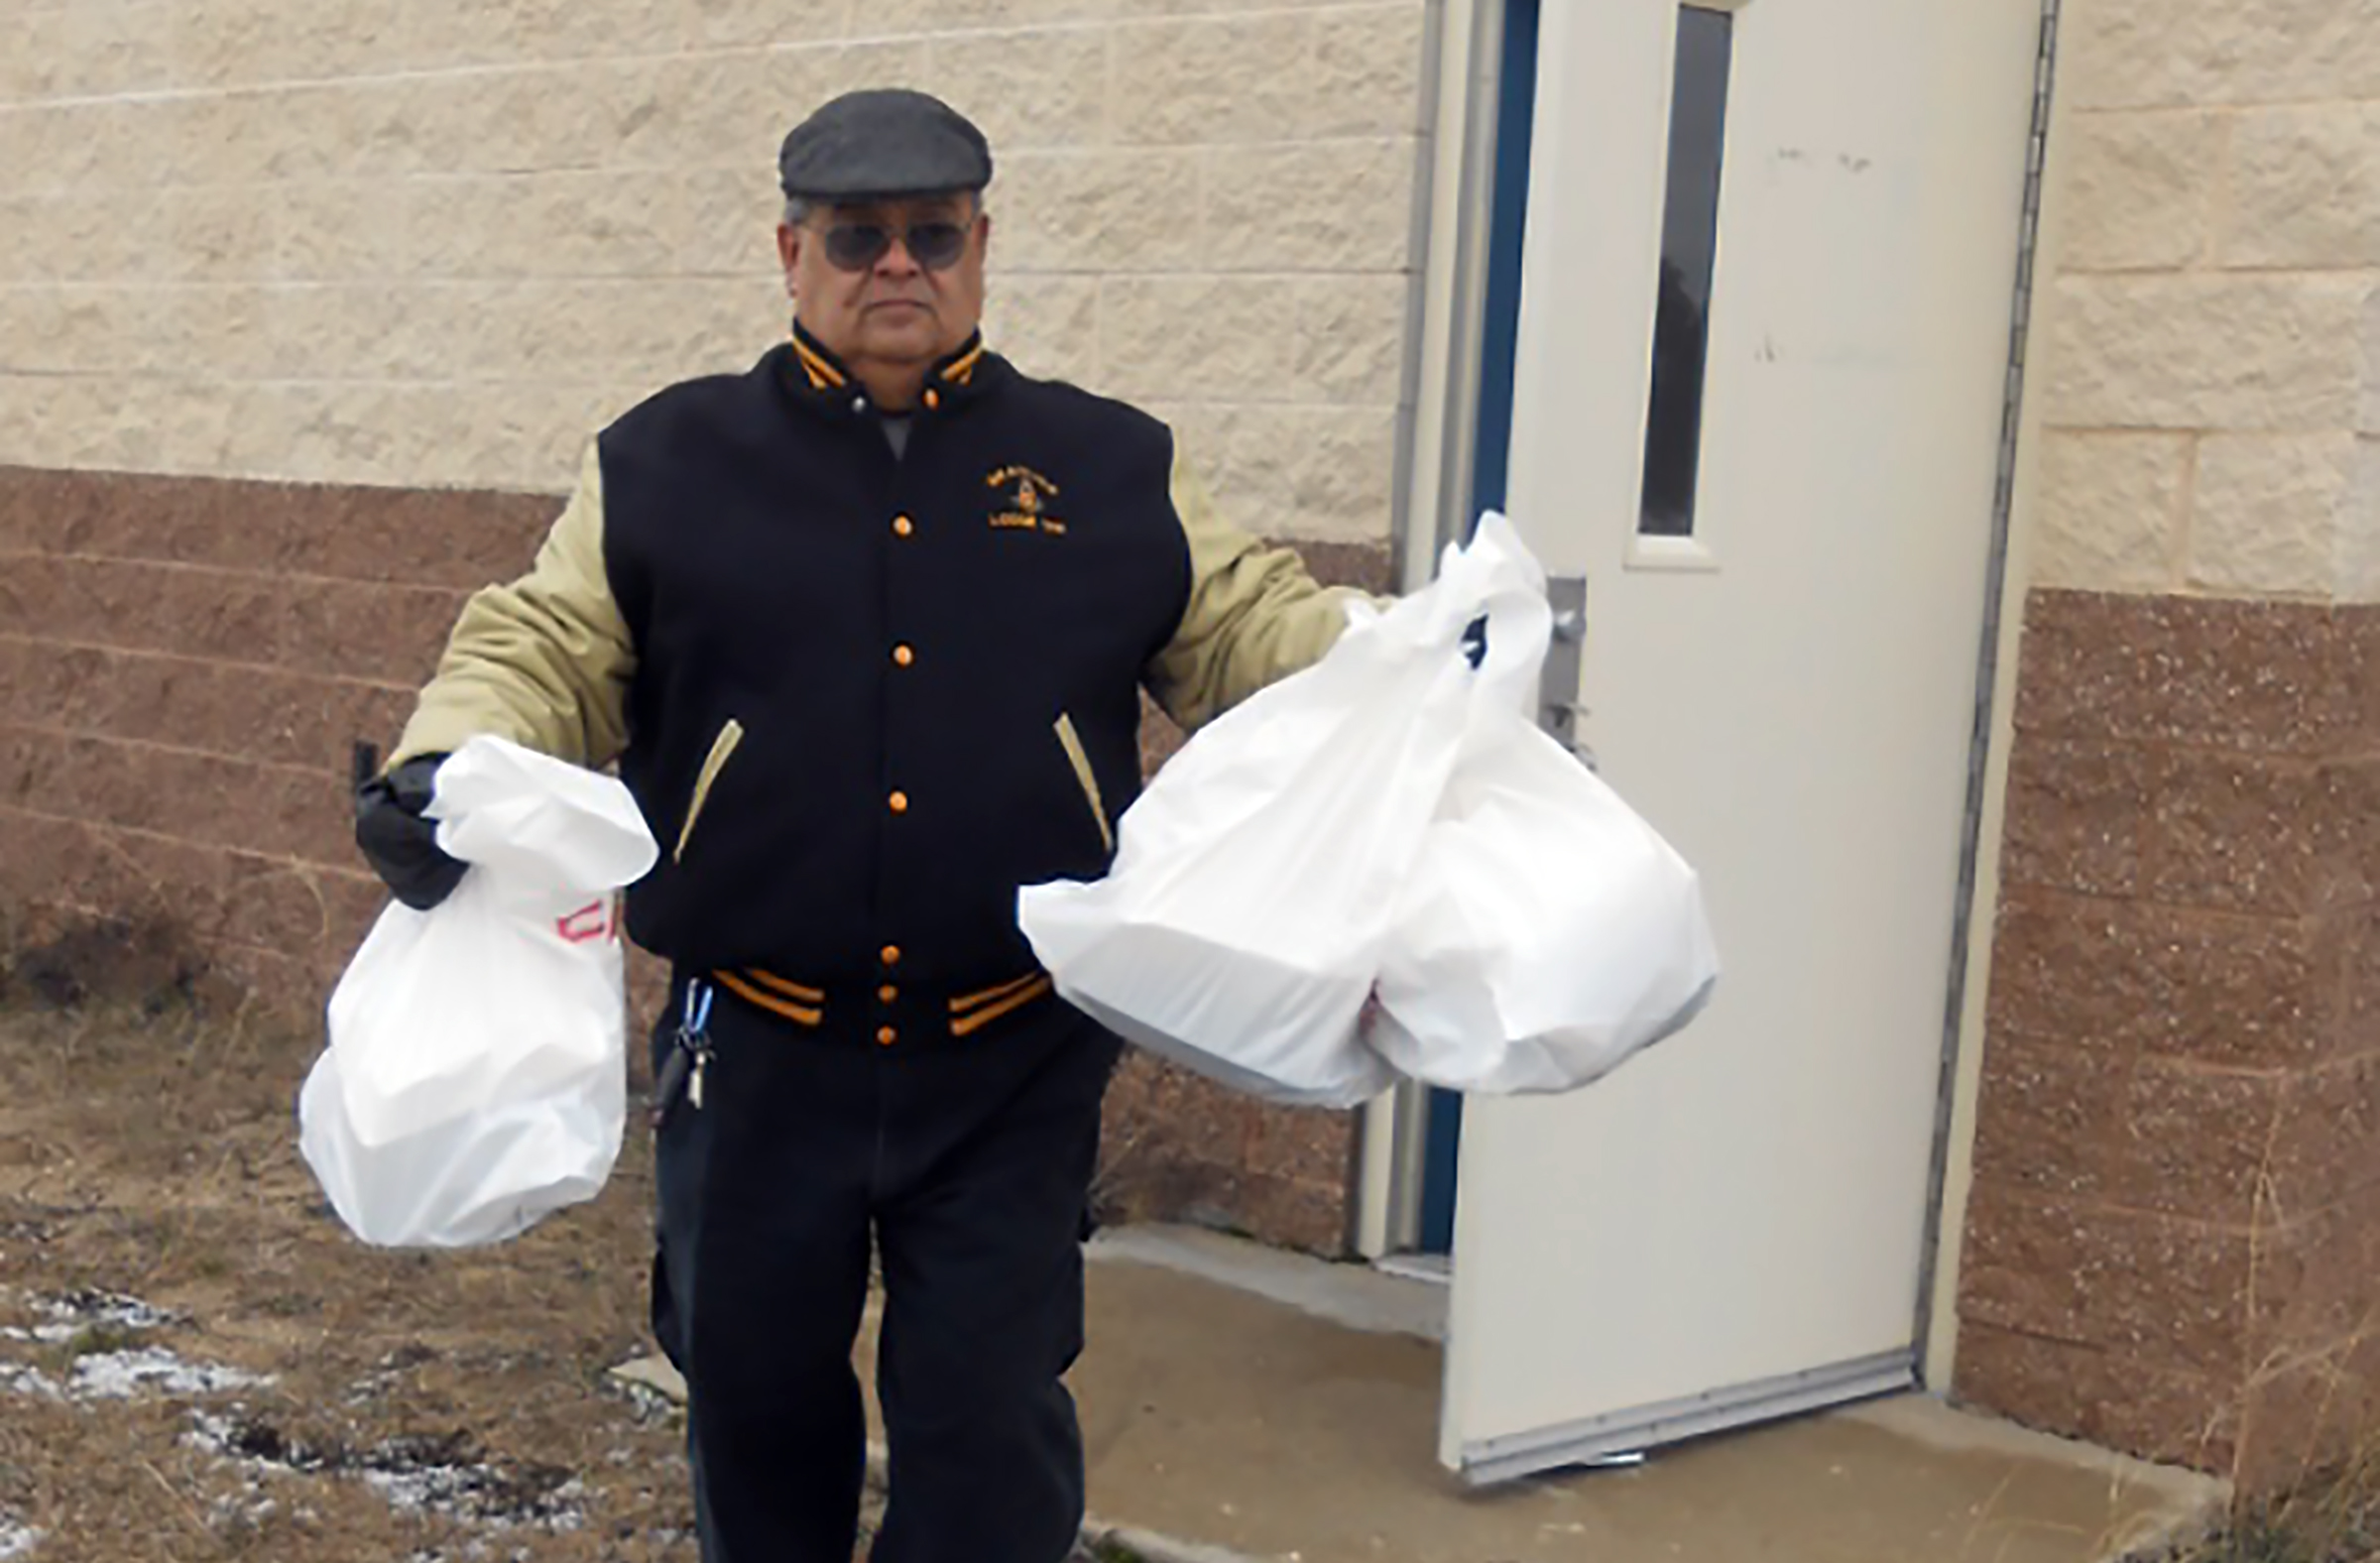 Louis Arreola, a member of the Grayling Masonic Lodge #356, carries a number of meals to waiting vehicles delivering meals.